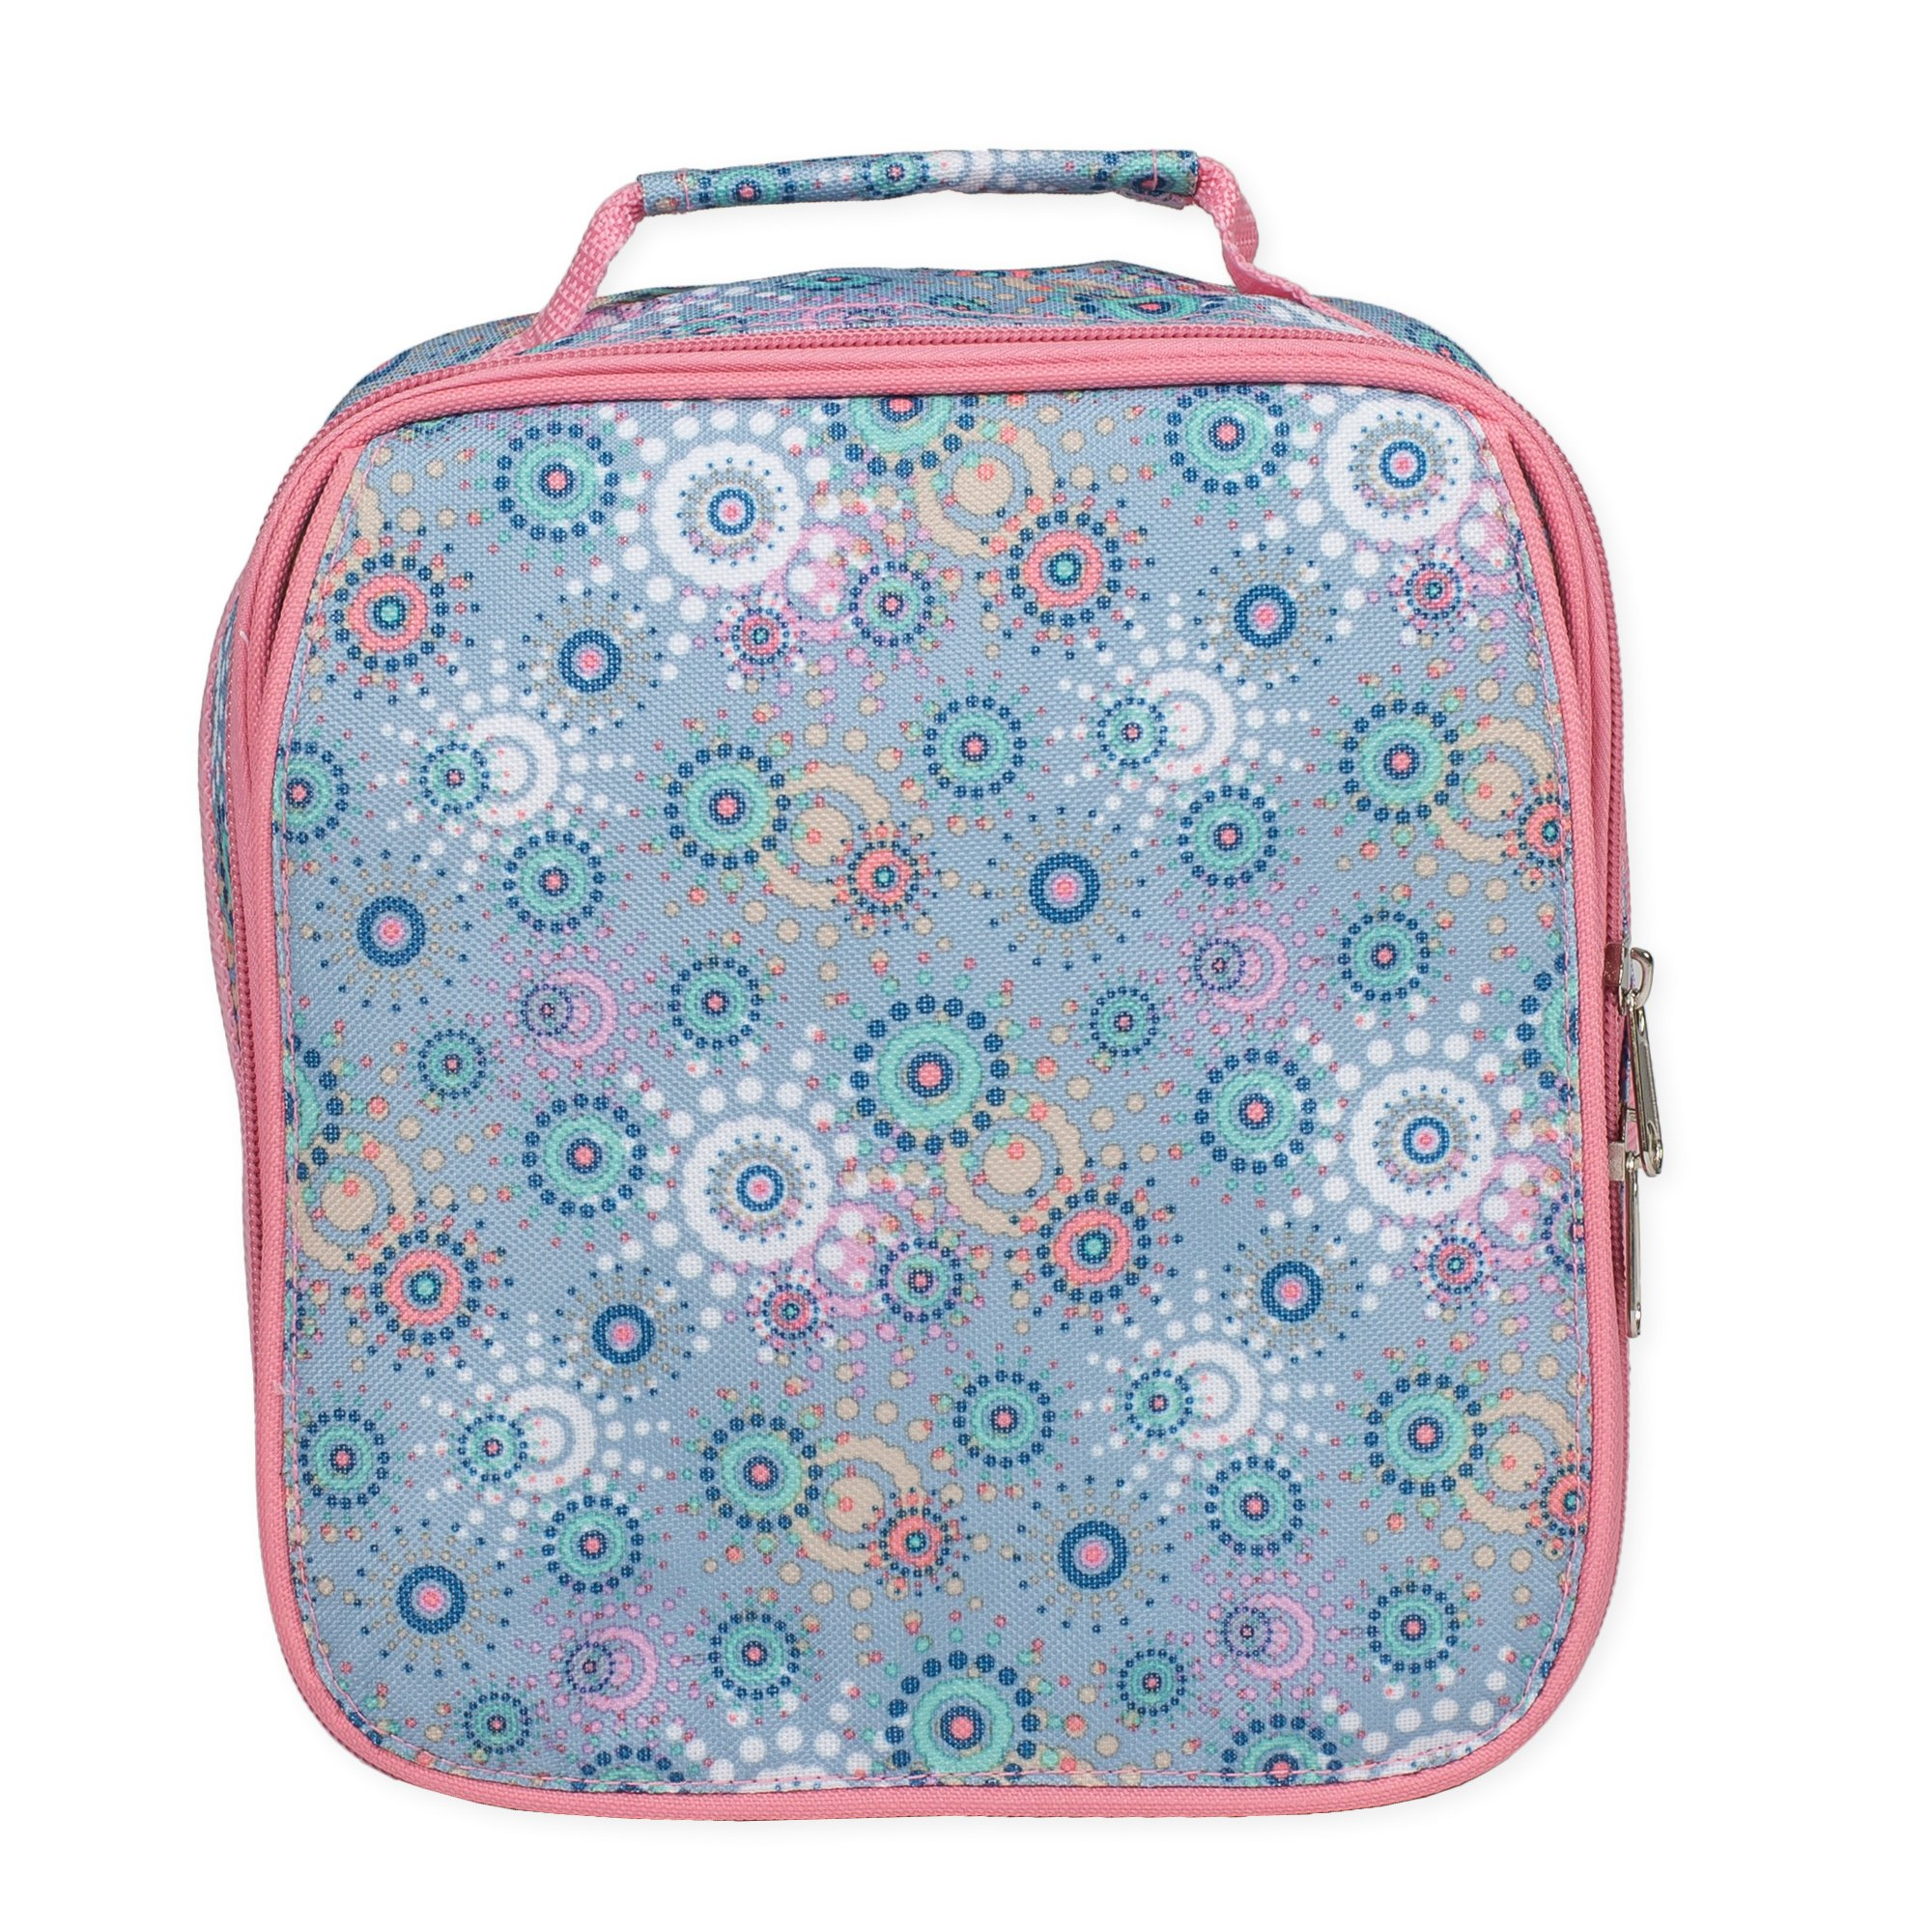 Periwinkle Circle Dot Water Resistant Zipper Closure Isulated Soft Cooler Lunch Bag